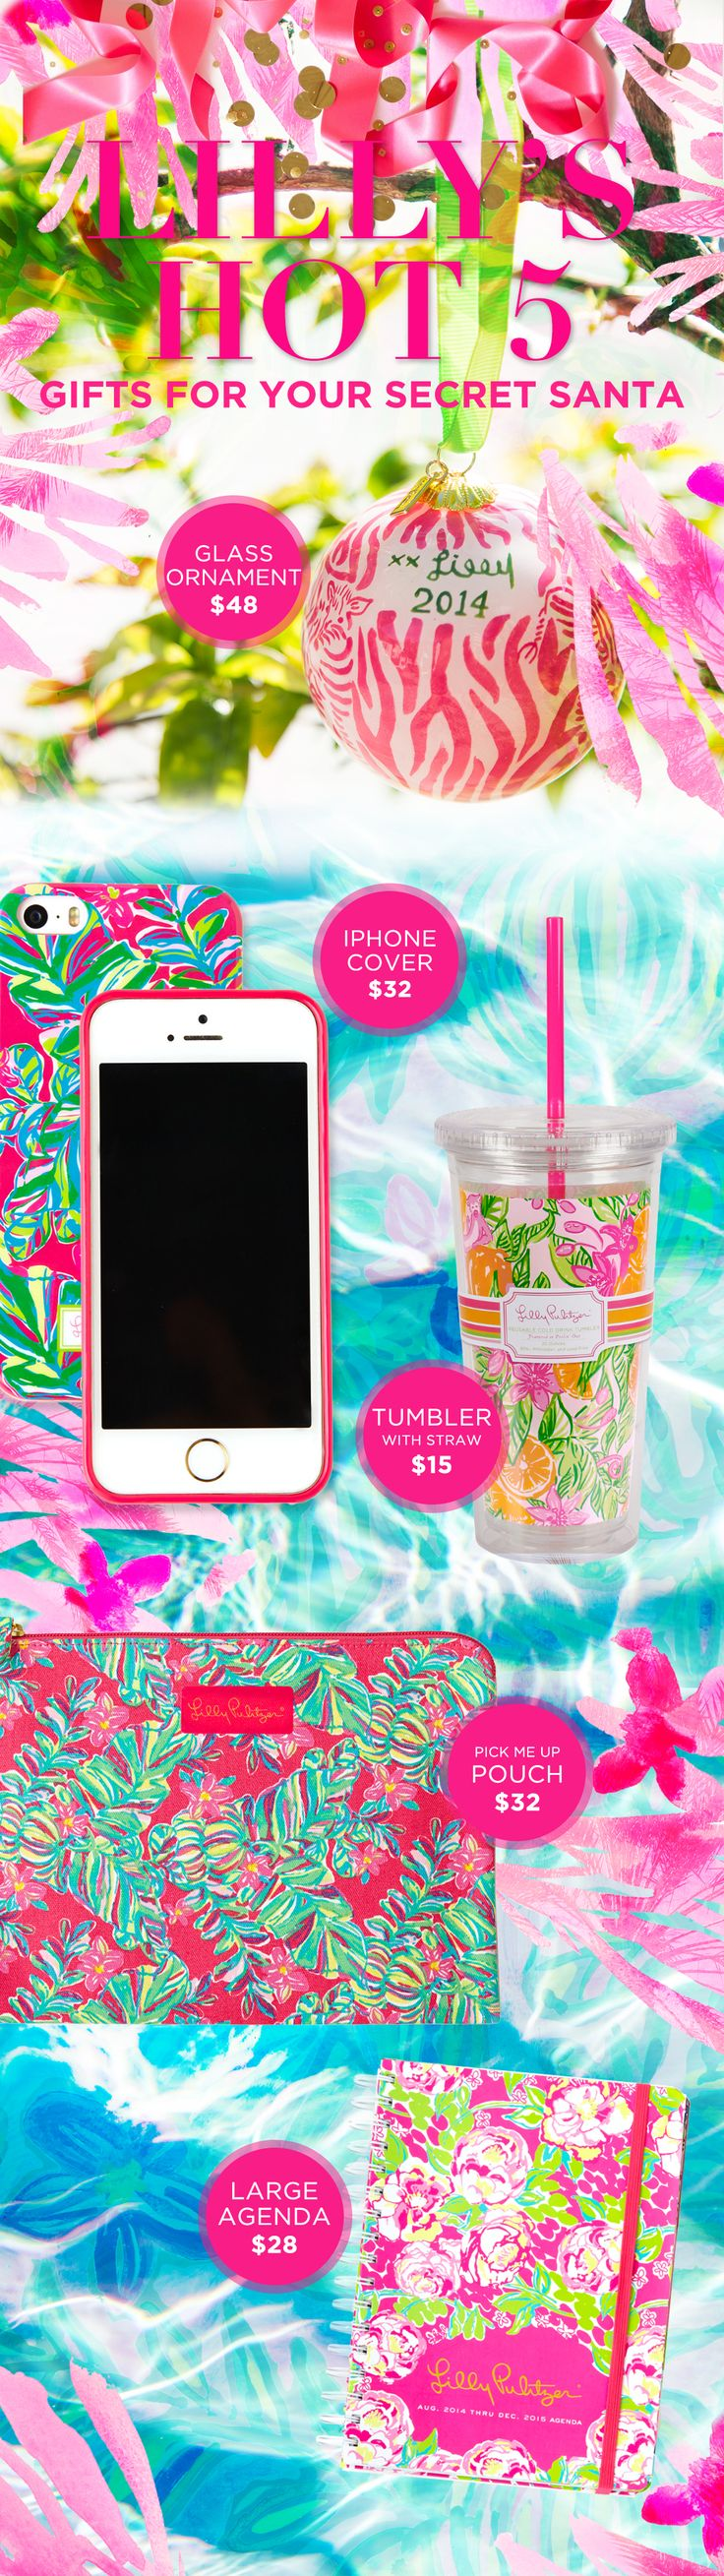 Lilly Pulitzer Gifts for your Secret Santa